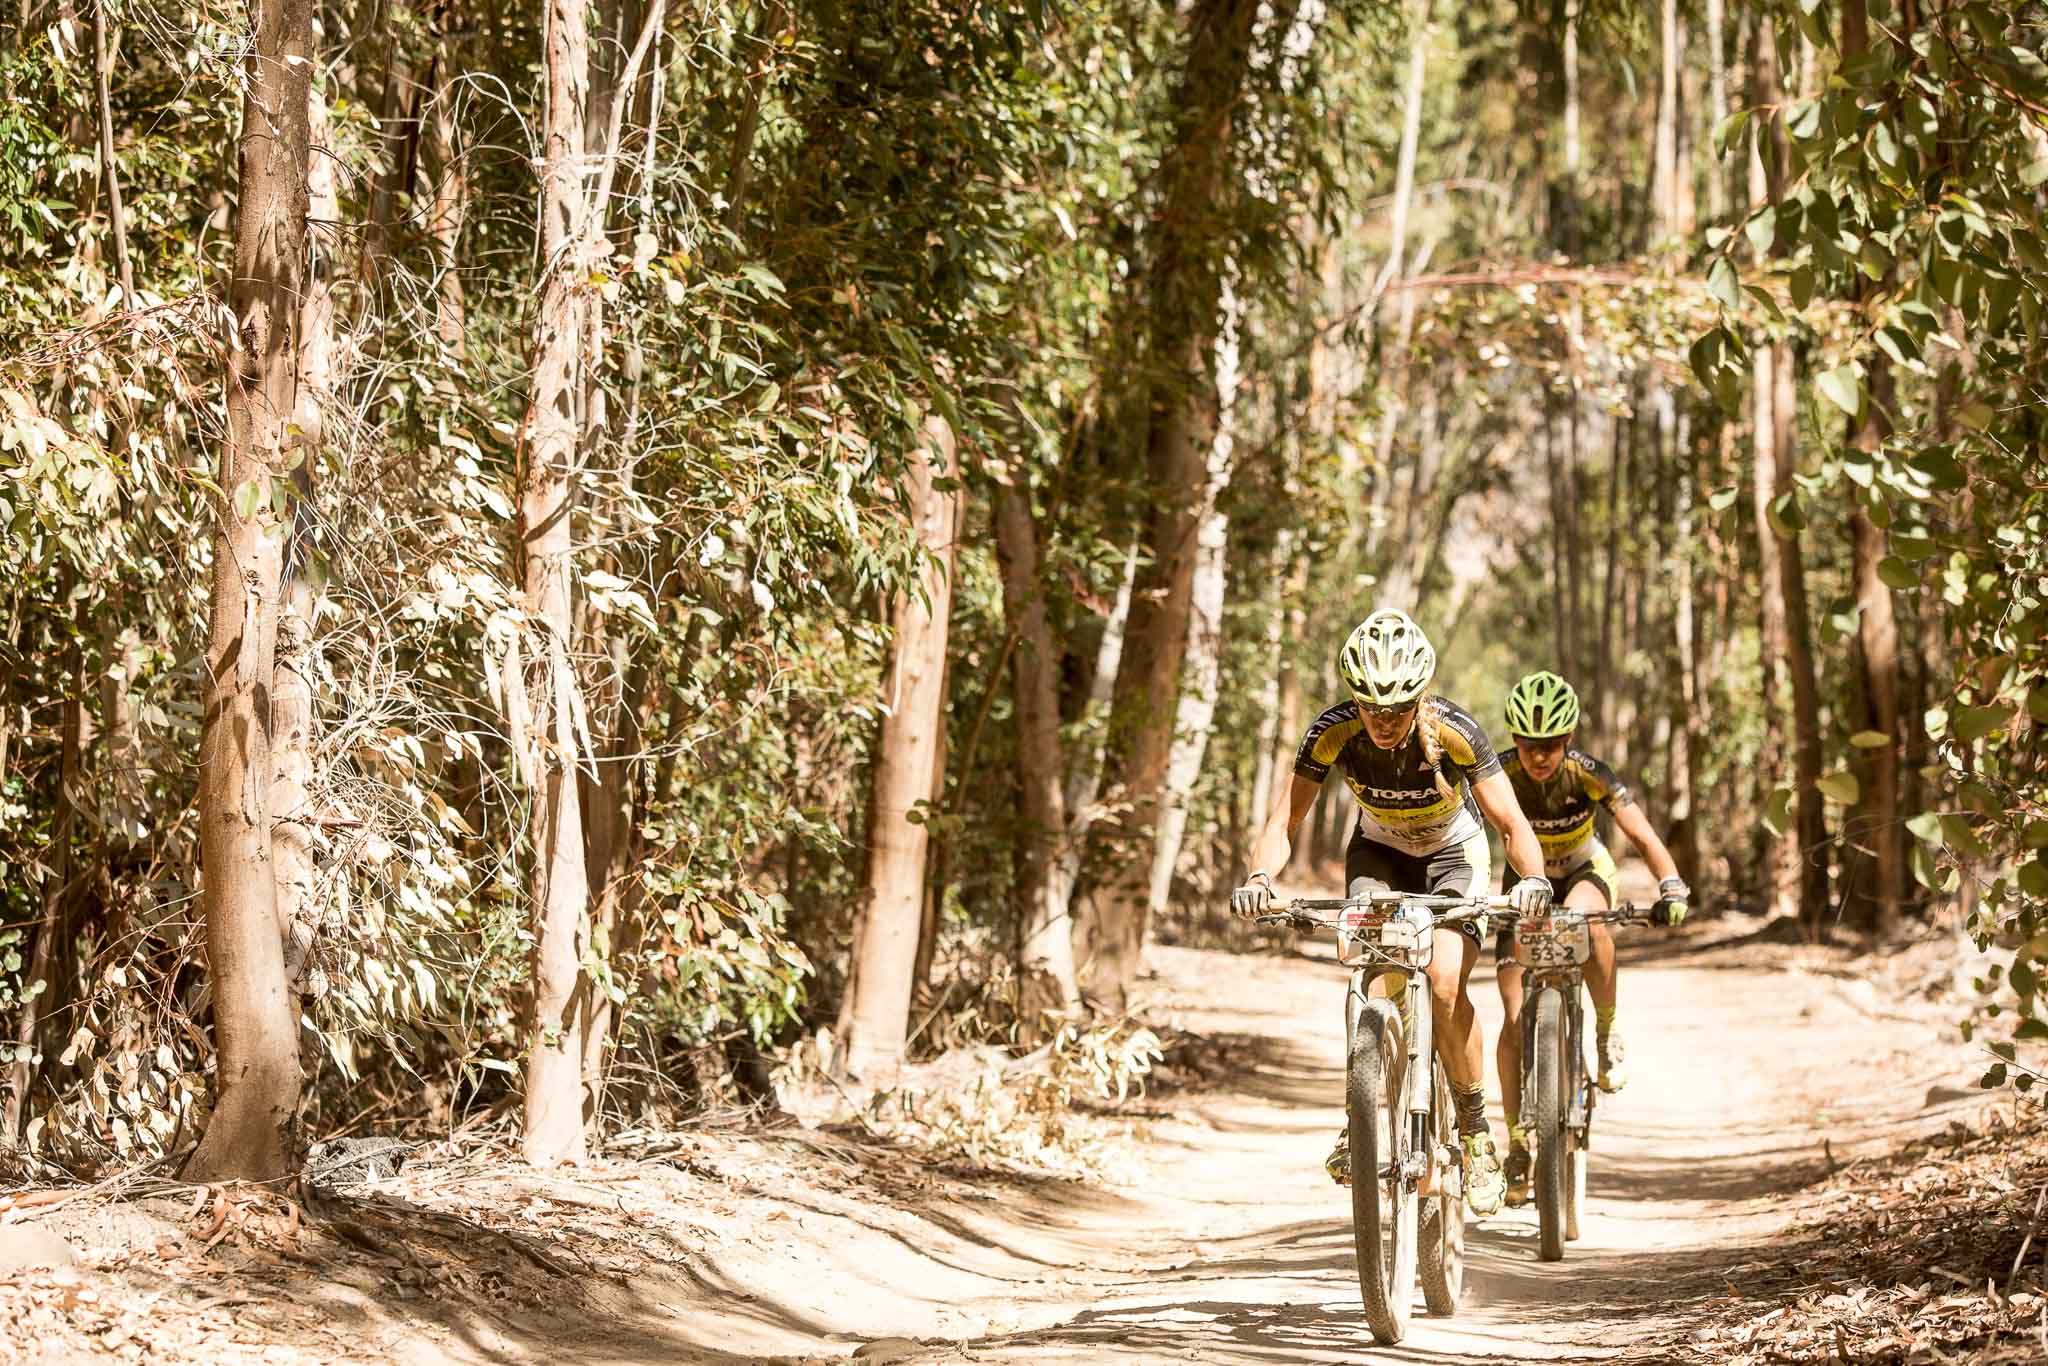 Sally Bigham (front) and Adel Morath (rear) during stage 1 of the 2016 Absa Cape Epic Mountain Bike stage race held from Saronsberg Wine Estate in Tulbagh, South Africa on the 14th March 2016 Photo by Sam Clark/Cape Epic/SPORTZPICS PLEASE ENSURE THE APPROPRIATE CREDIT IS GIVEN TO THE PHOTOGRAPHER AND SPORTZPICS ALONG WITH THE ABSA CAPE EPIC {ace2016}